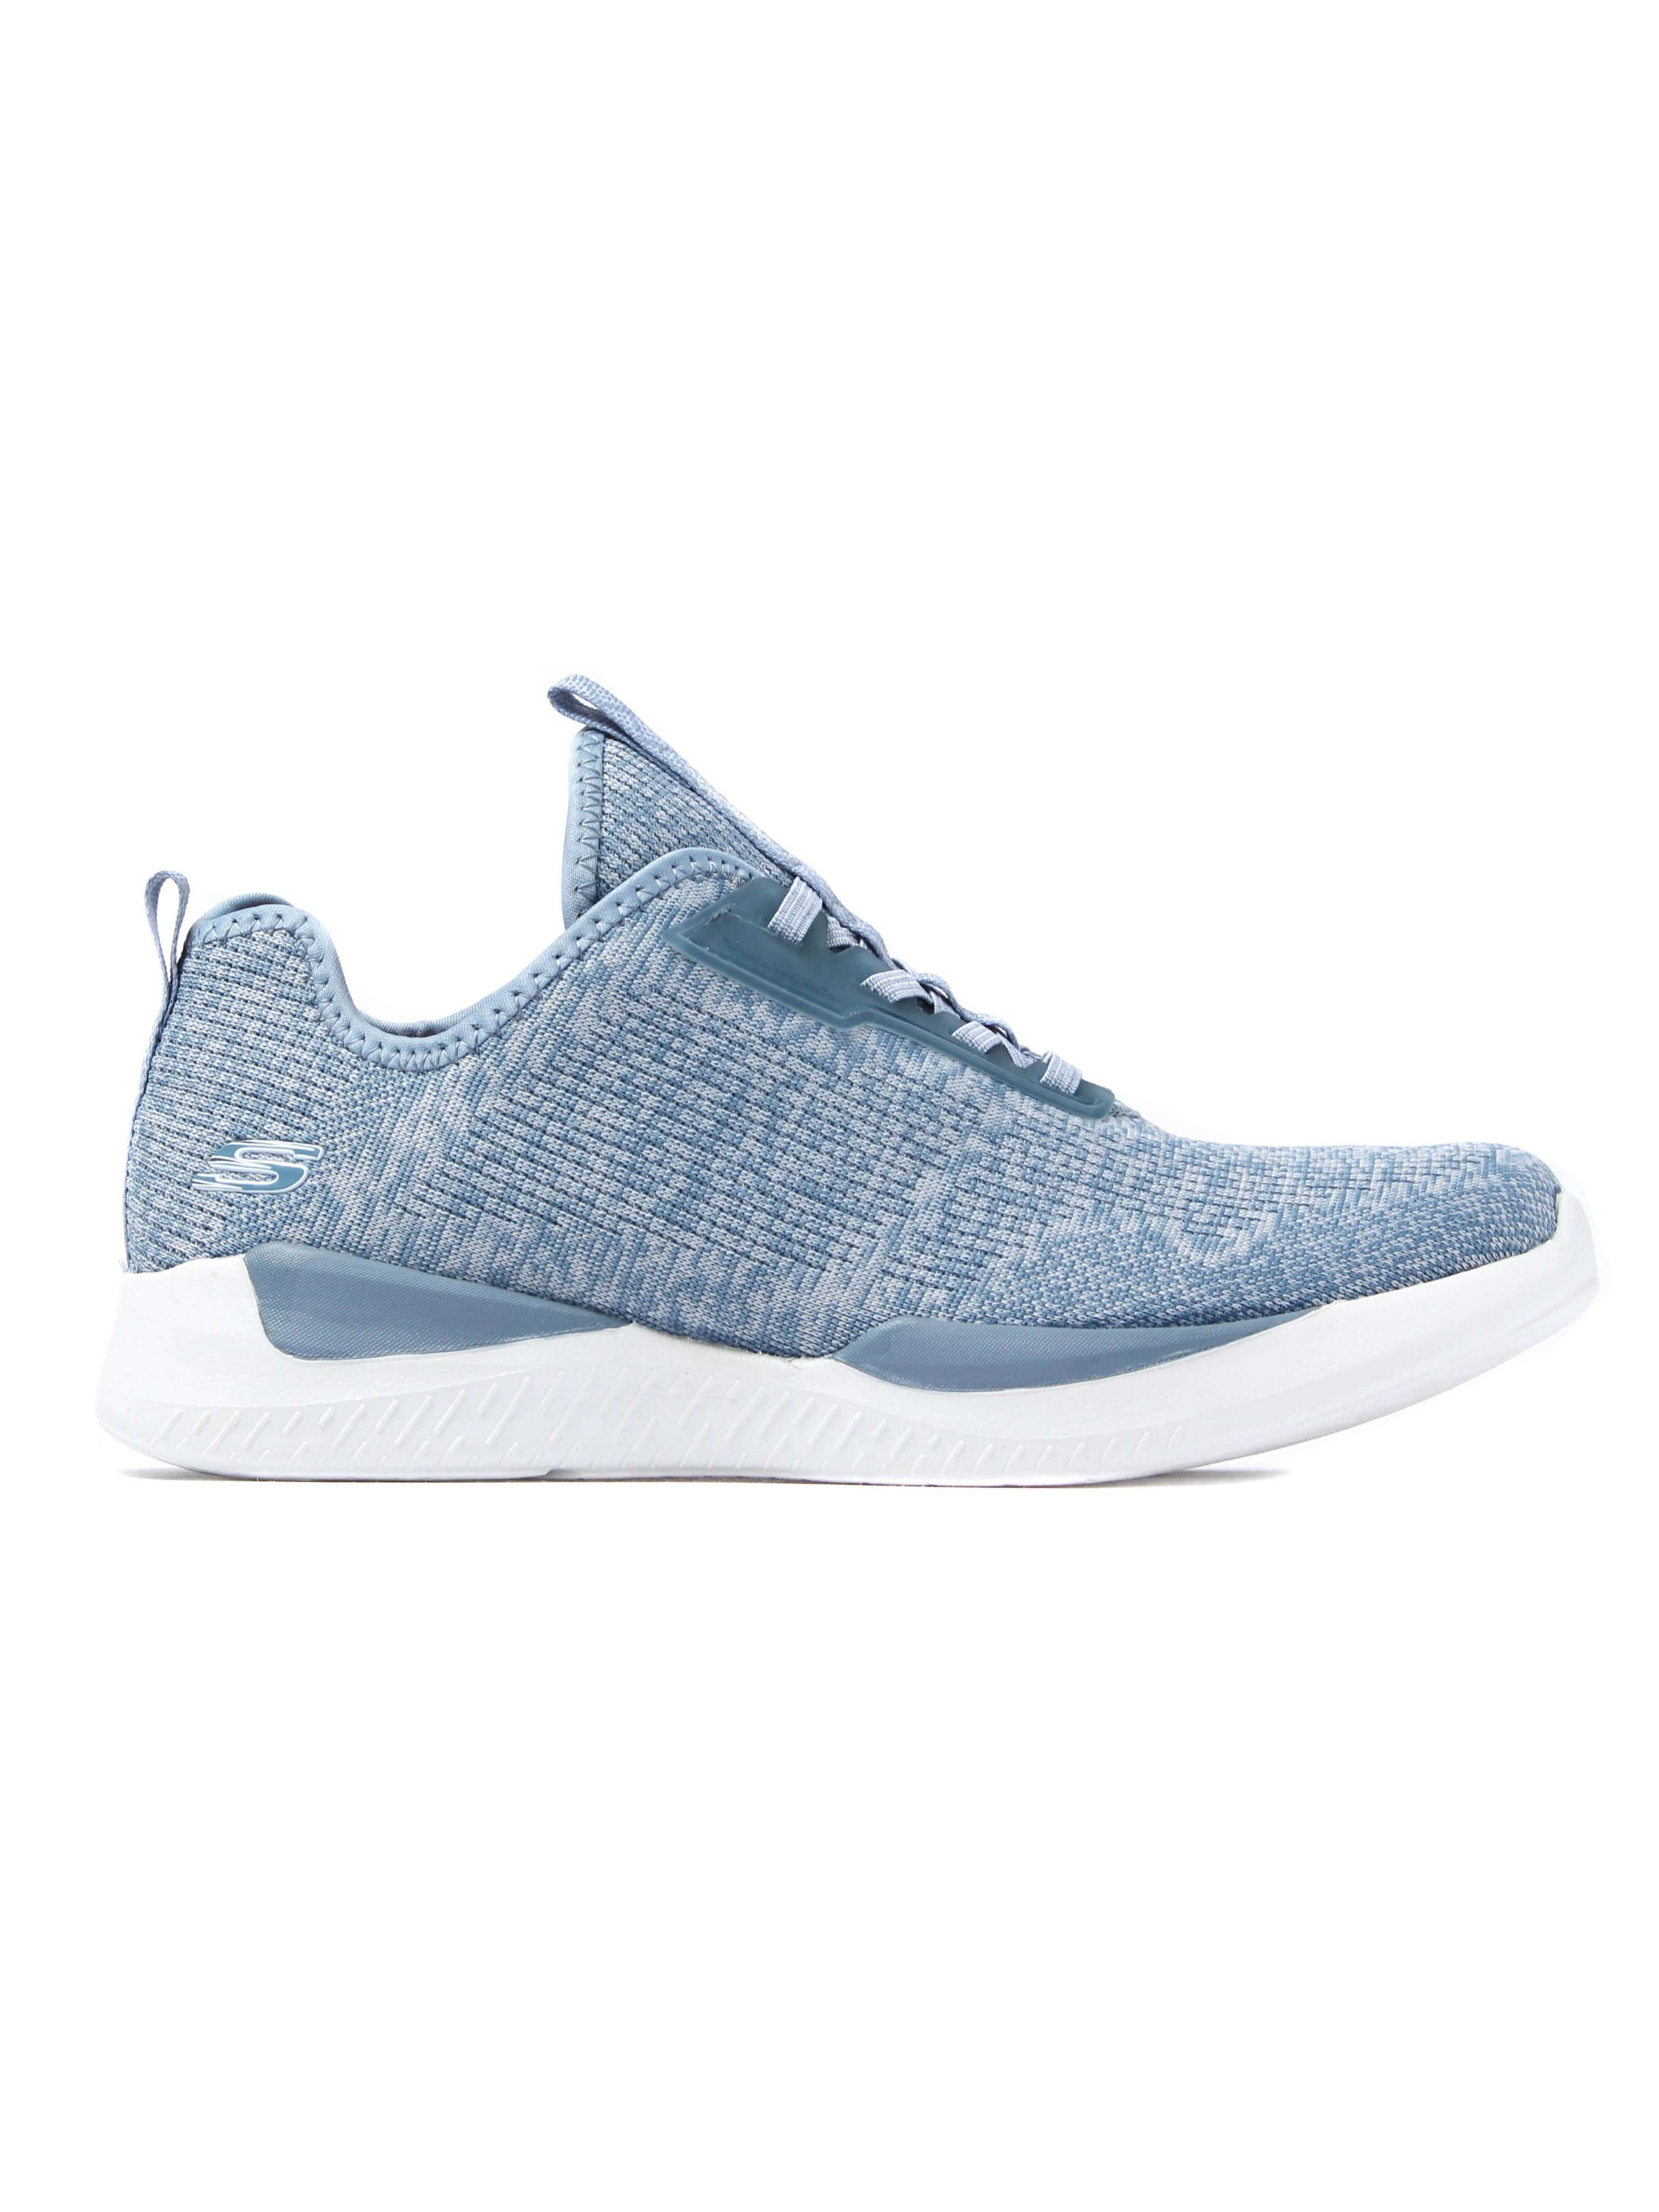 Skechers Women's Matrixx Trainers - Light Blue